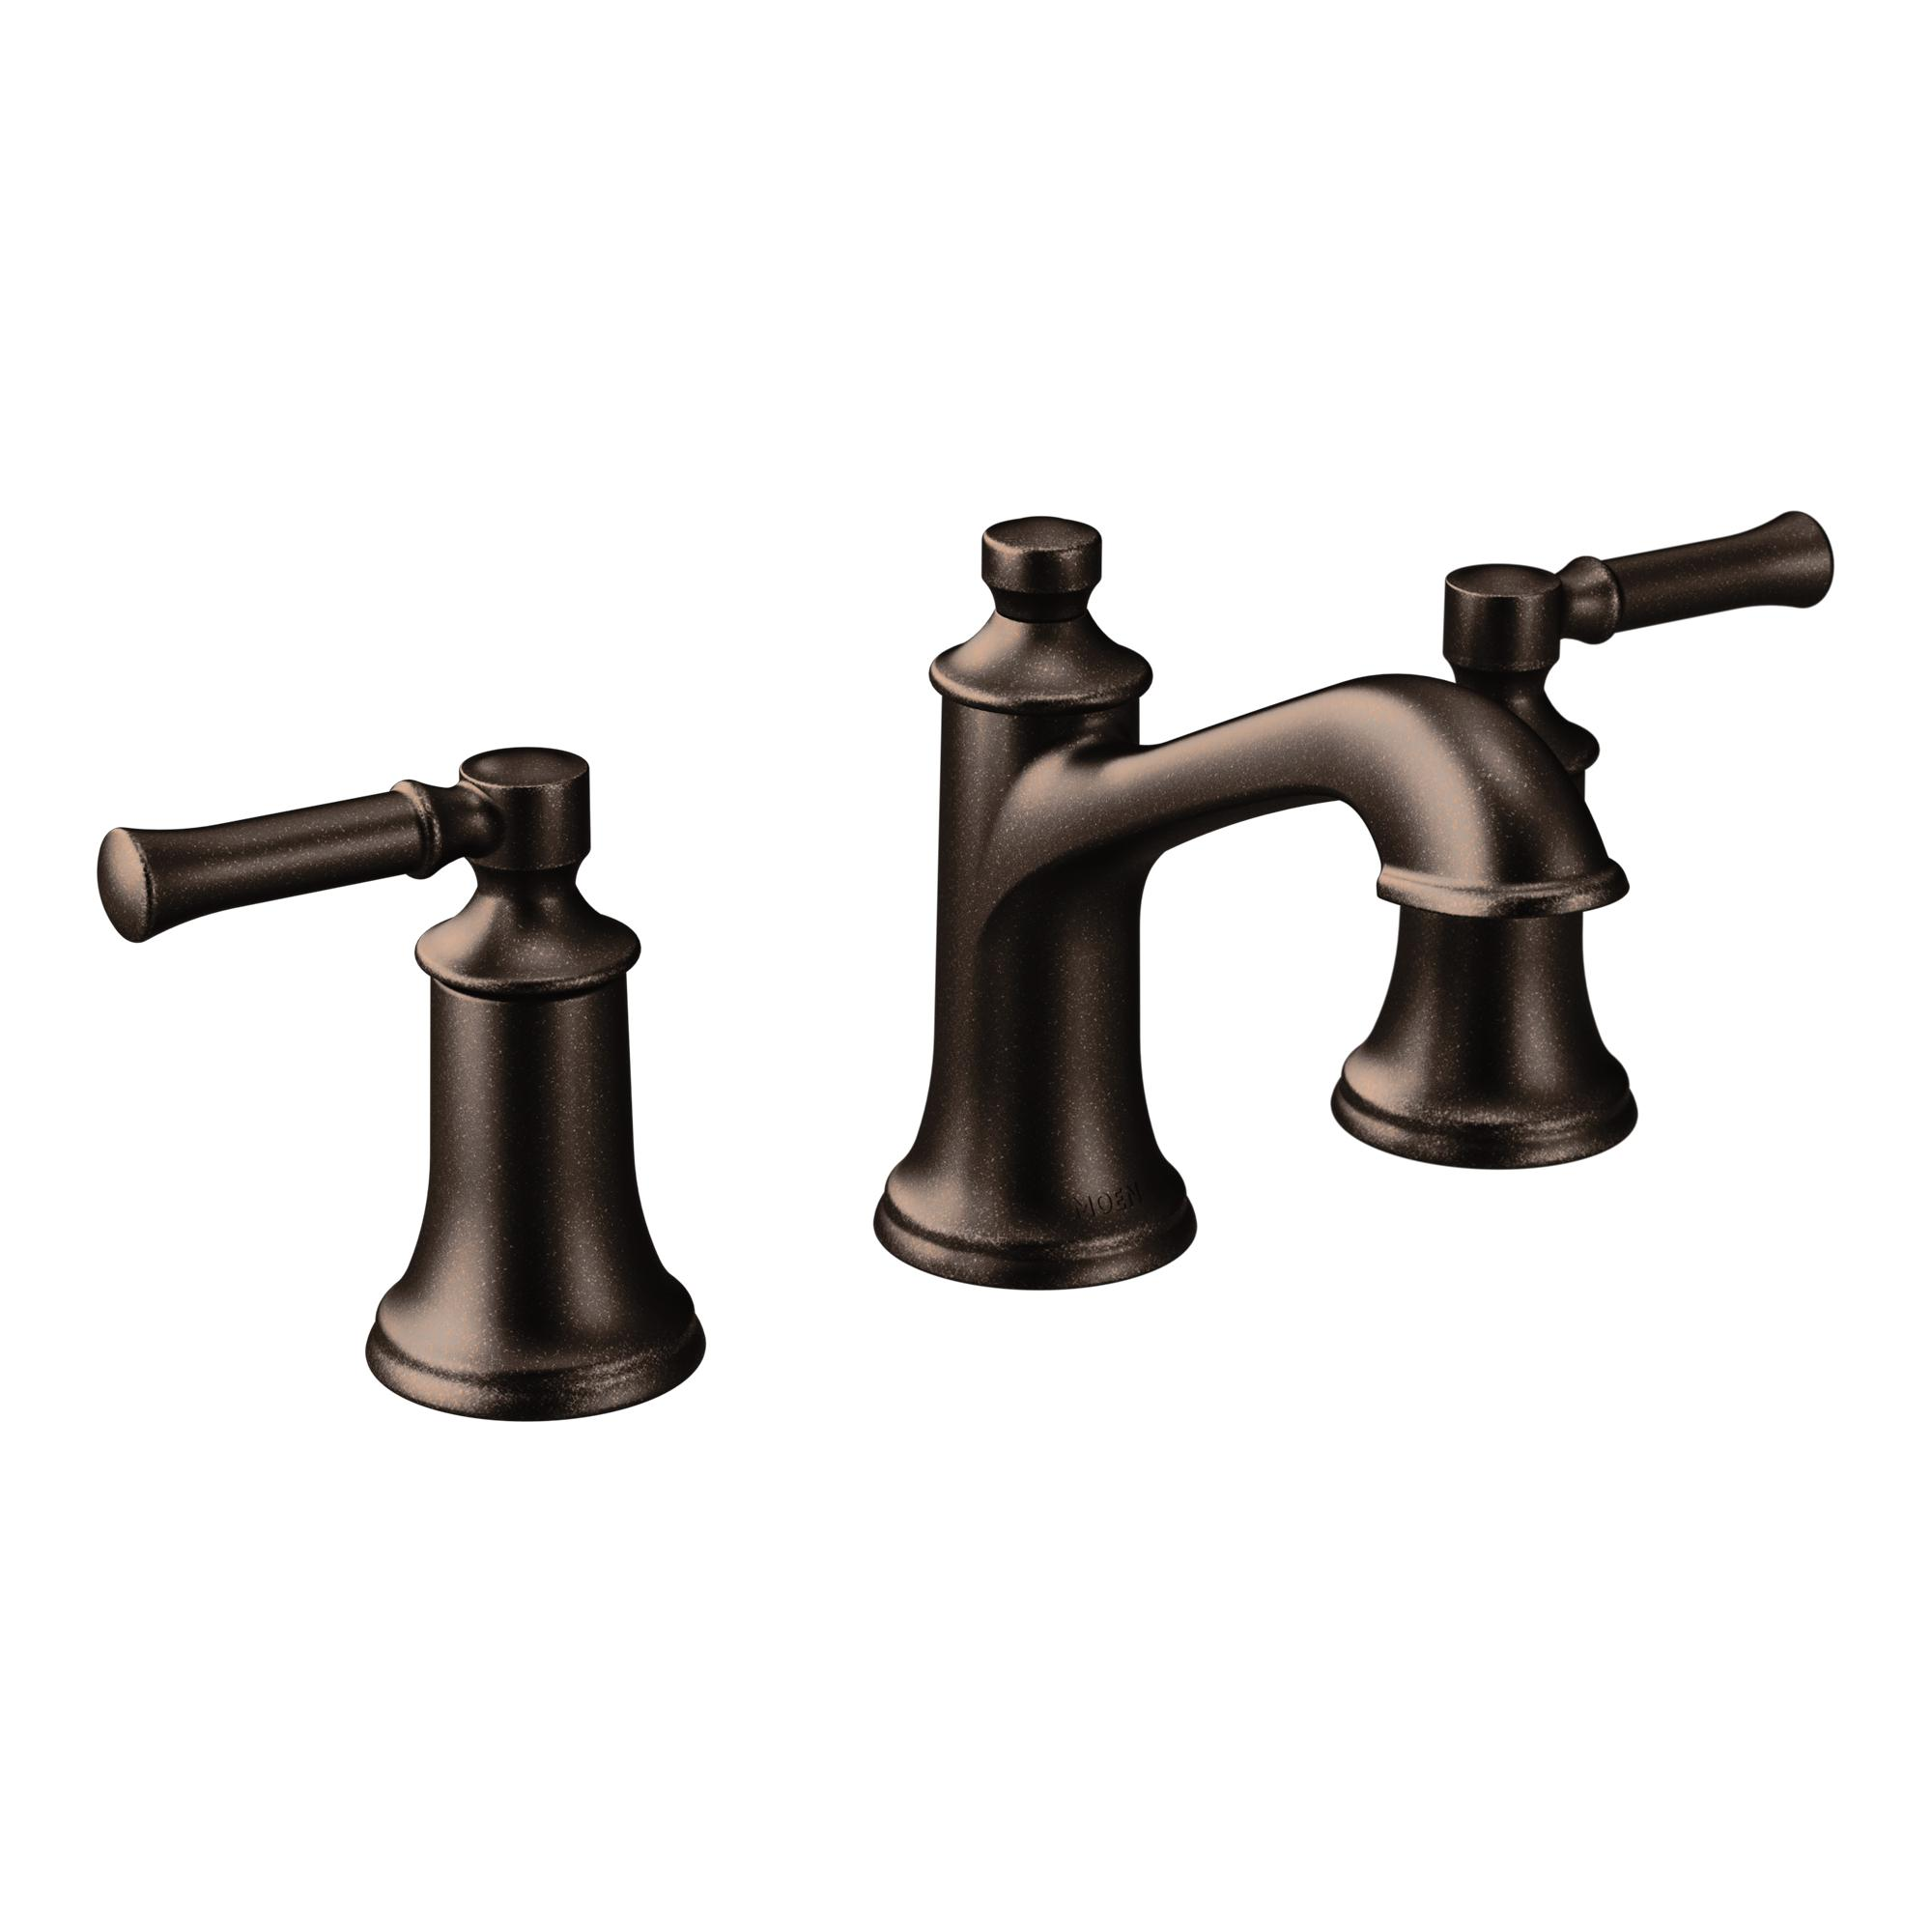 Moen t6805orb dartmoor two handle low arc bathroom faucet oil rubbed bronze Amazon bathroom faucets moen